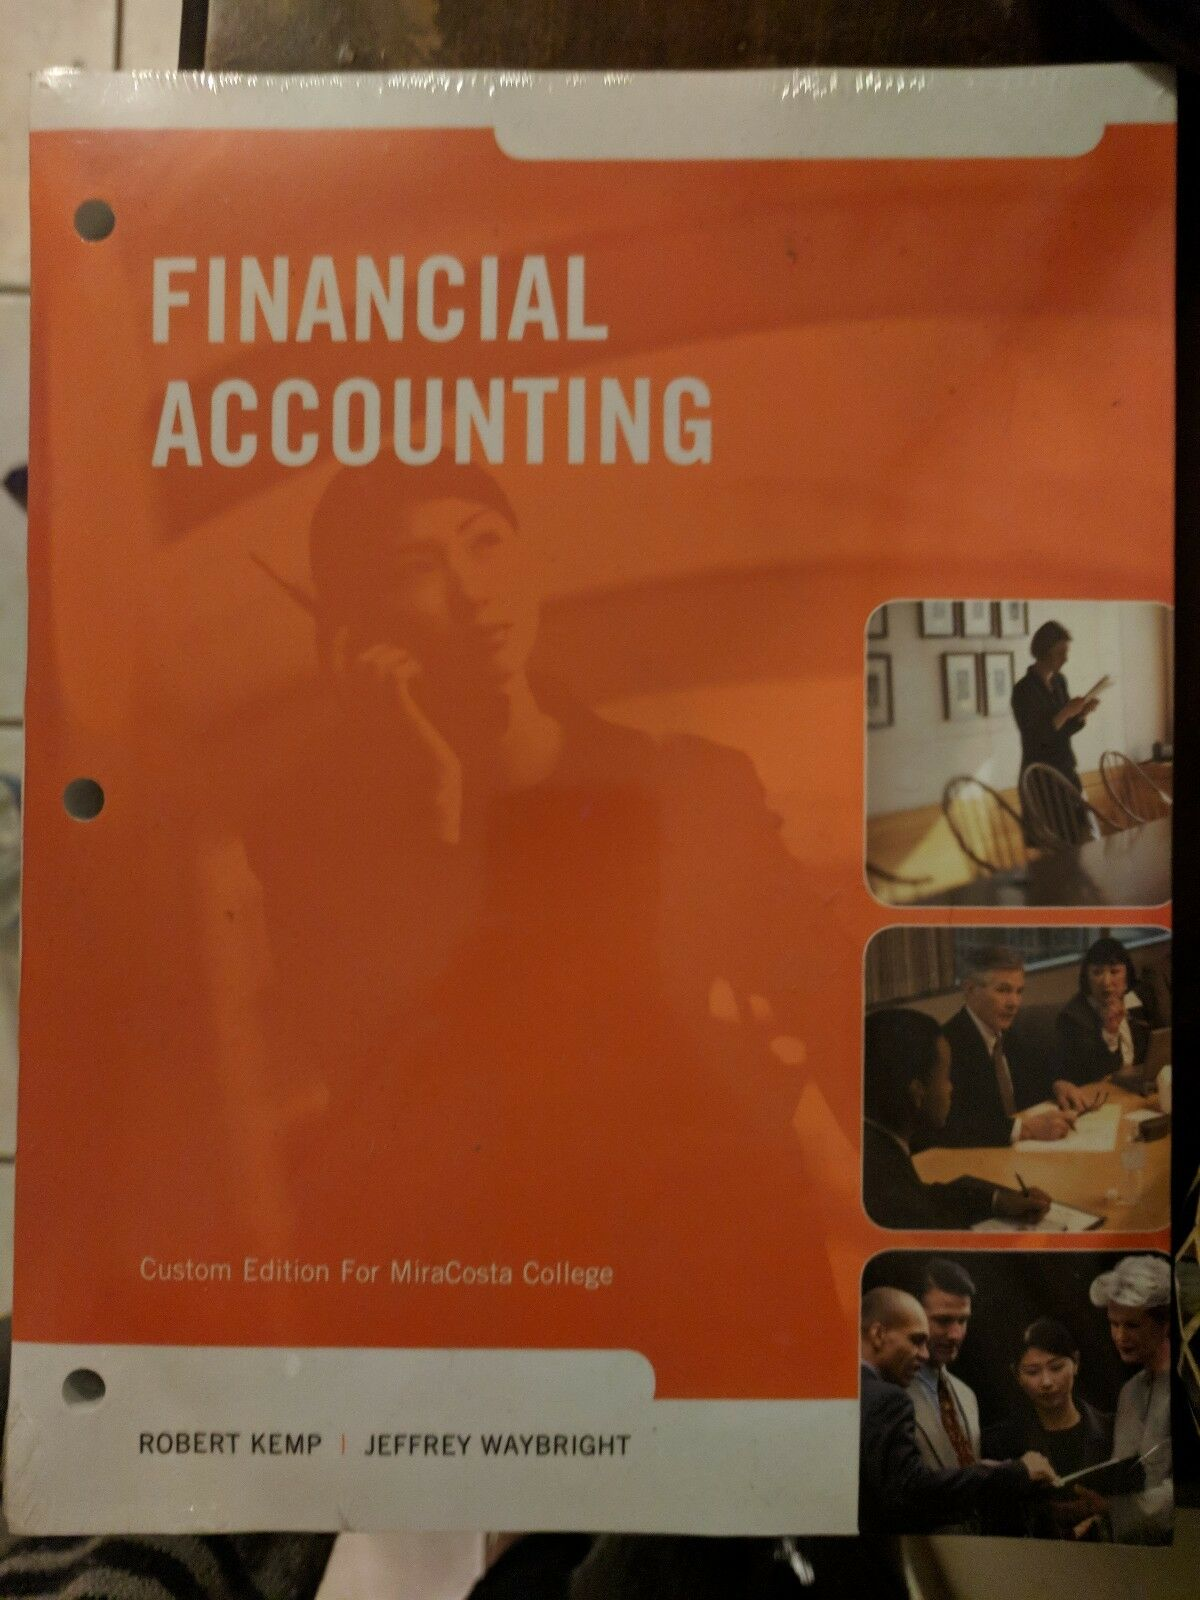 Financial accounting by jeffrey waybright and robert kemp 2016 resntentobalflowflowcomponentncel fandeluxe Choice Image